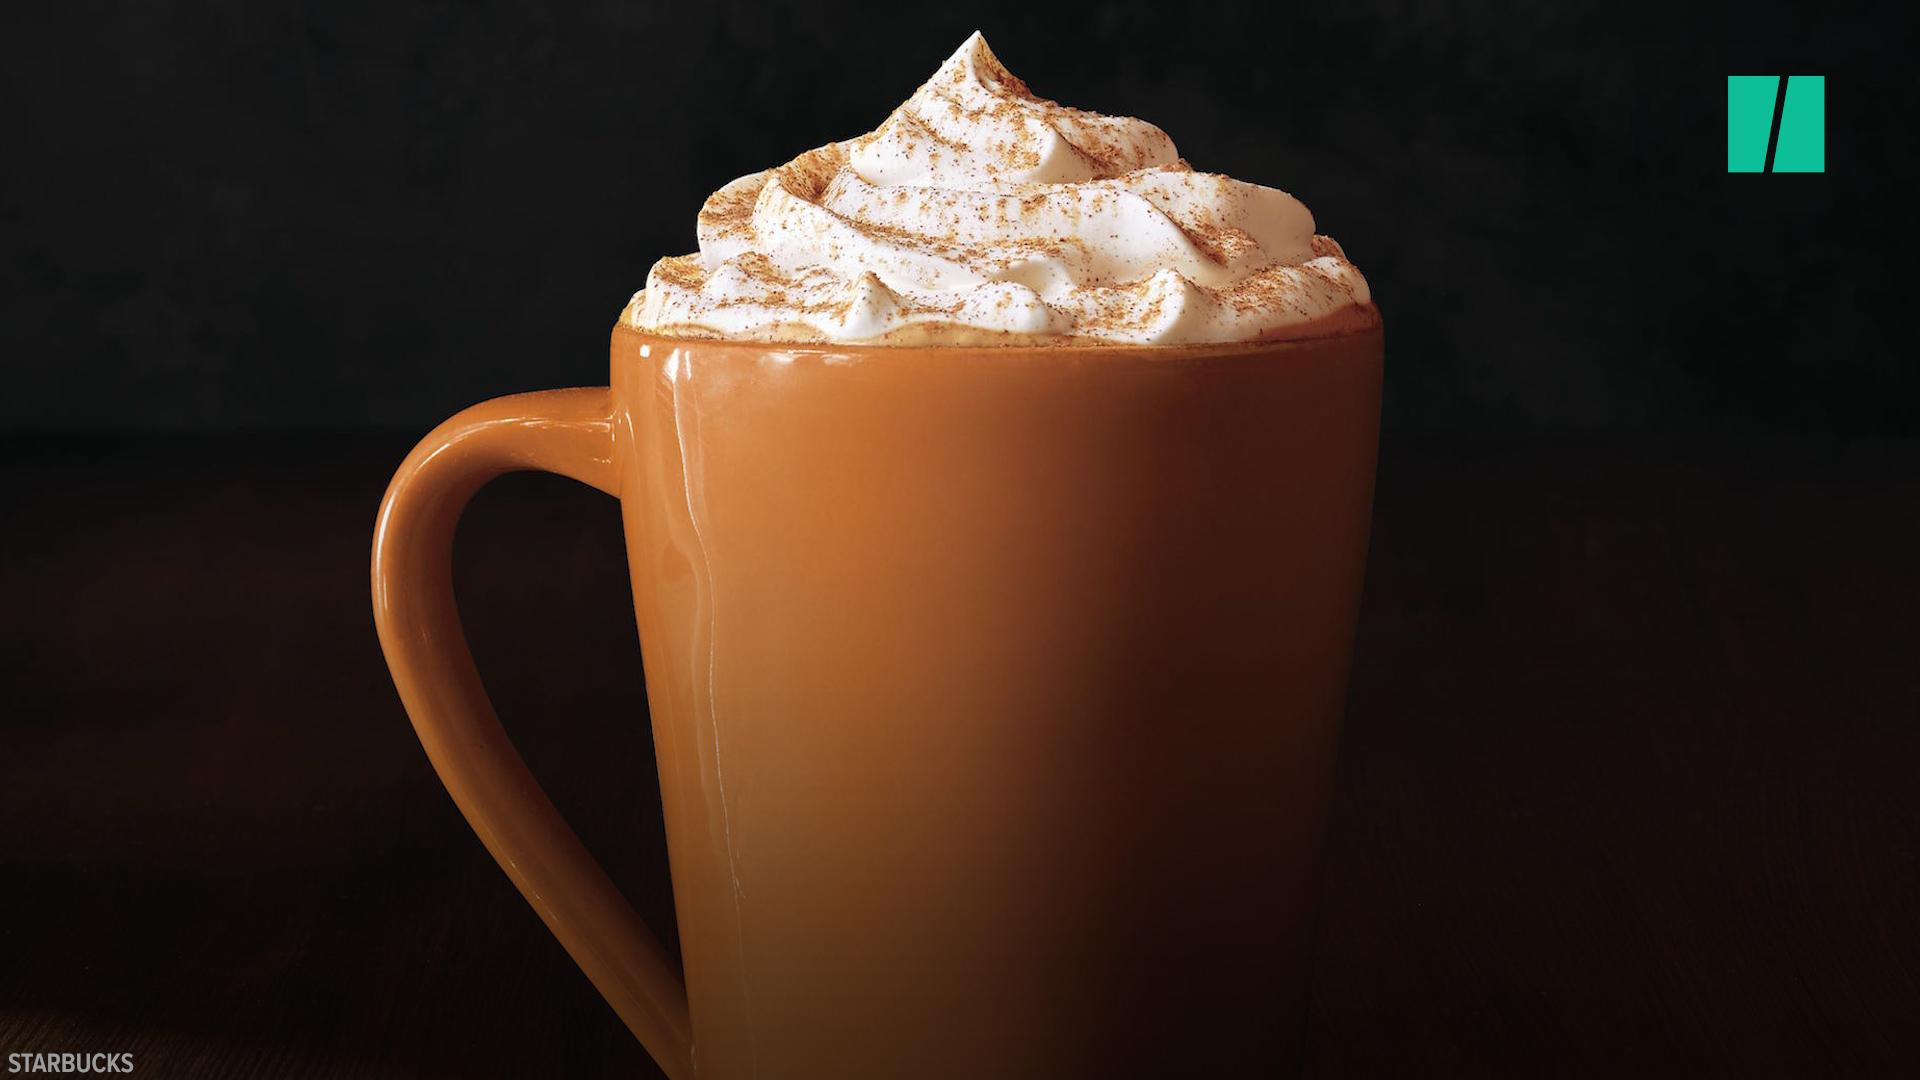 Fall Drinks You Should Order Instead Of A Pumpkin Spice Latte